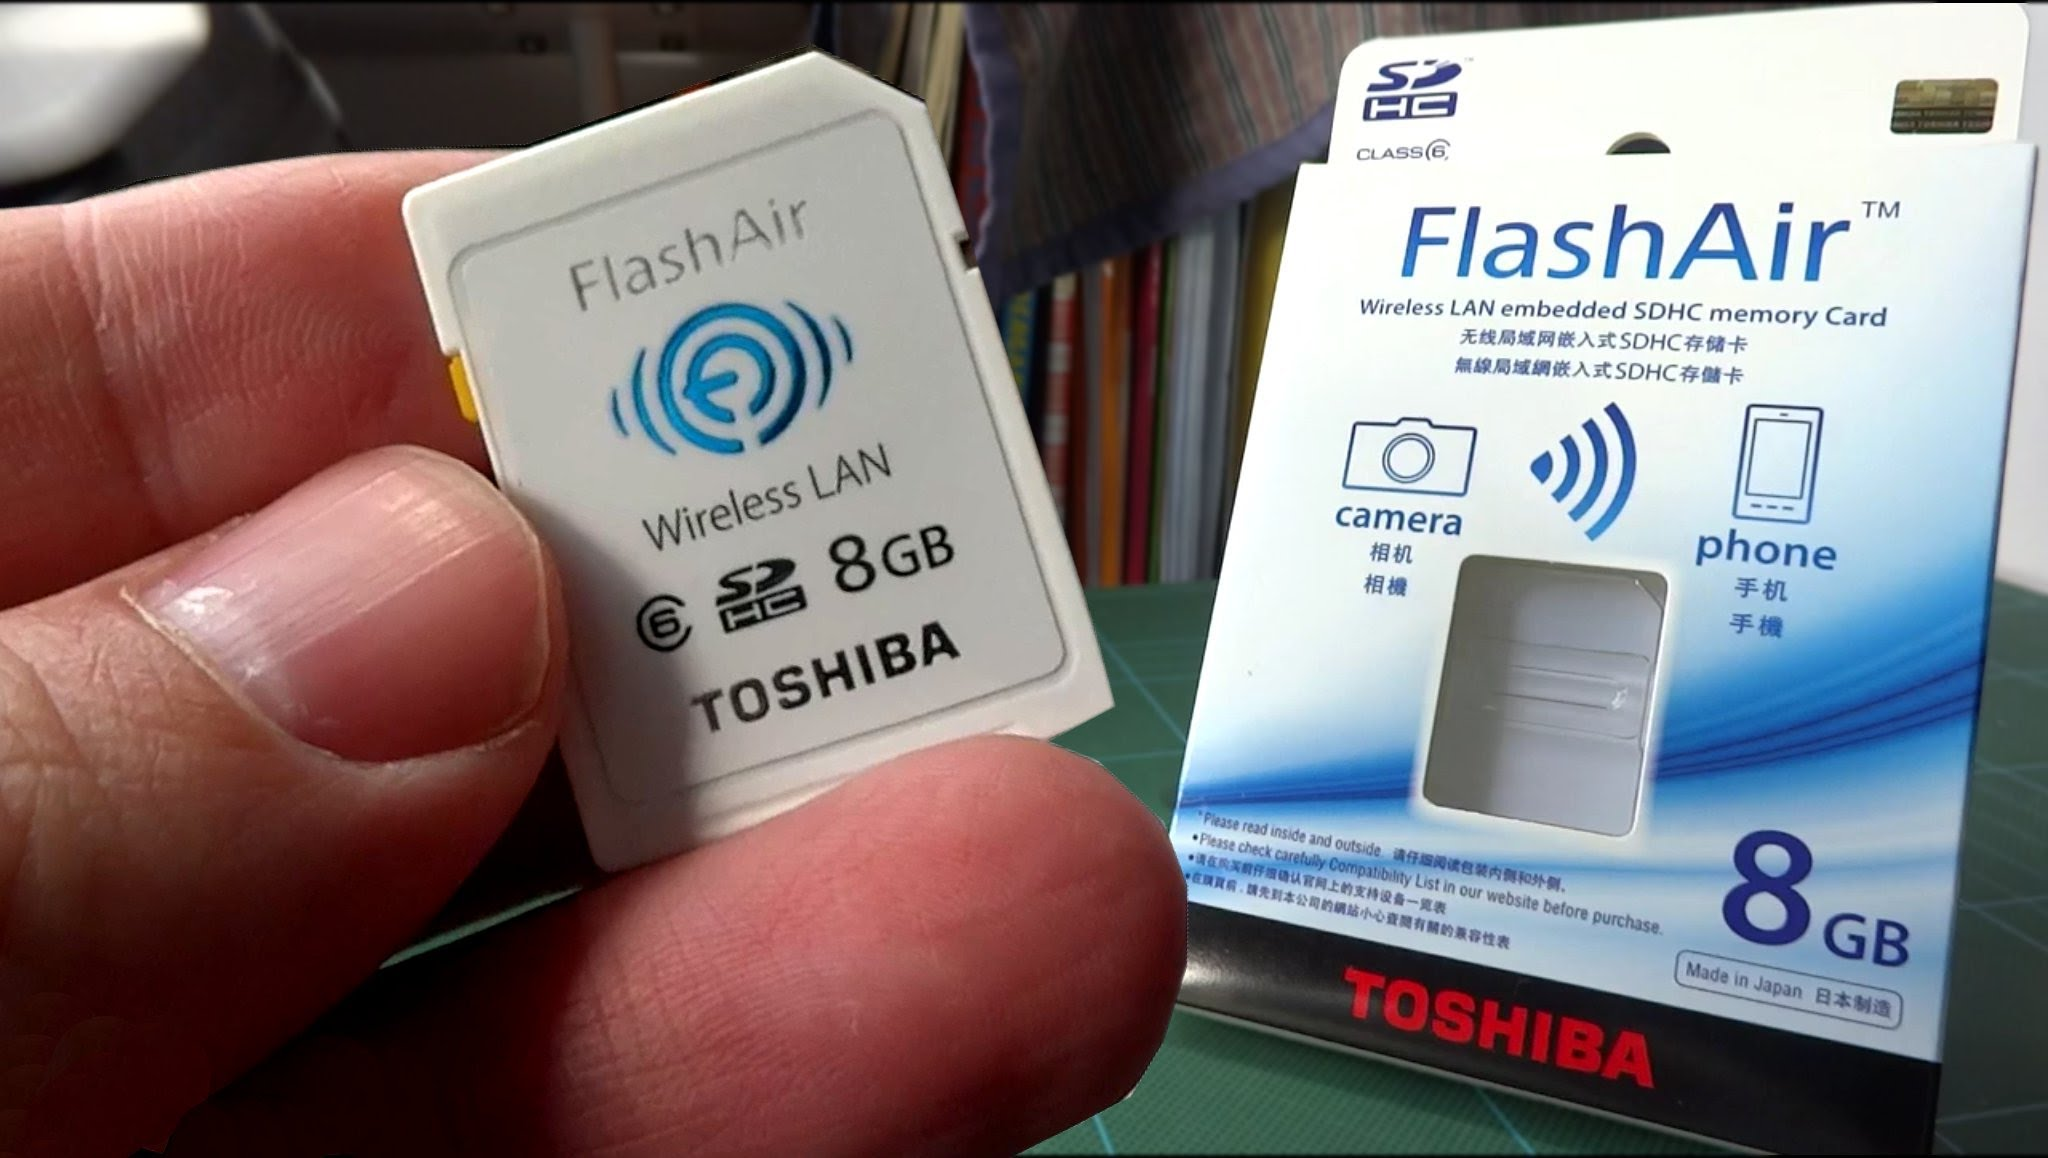 Toshiba FlashAir 8GB